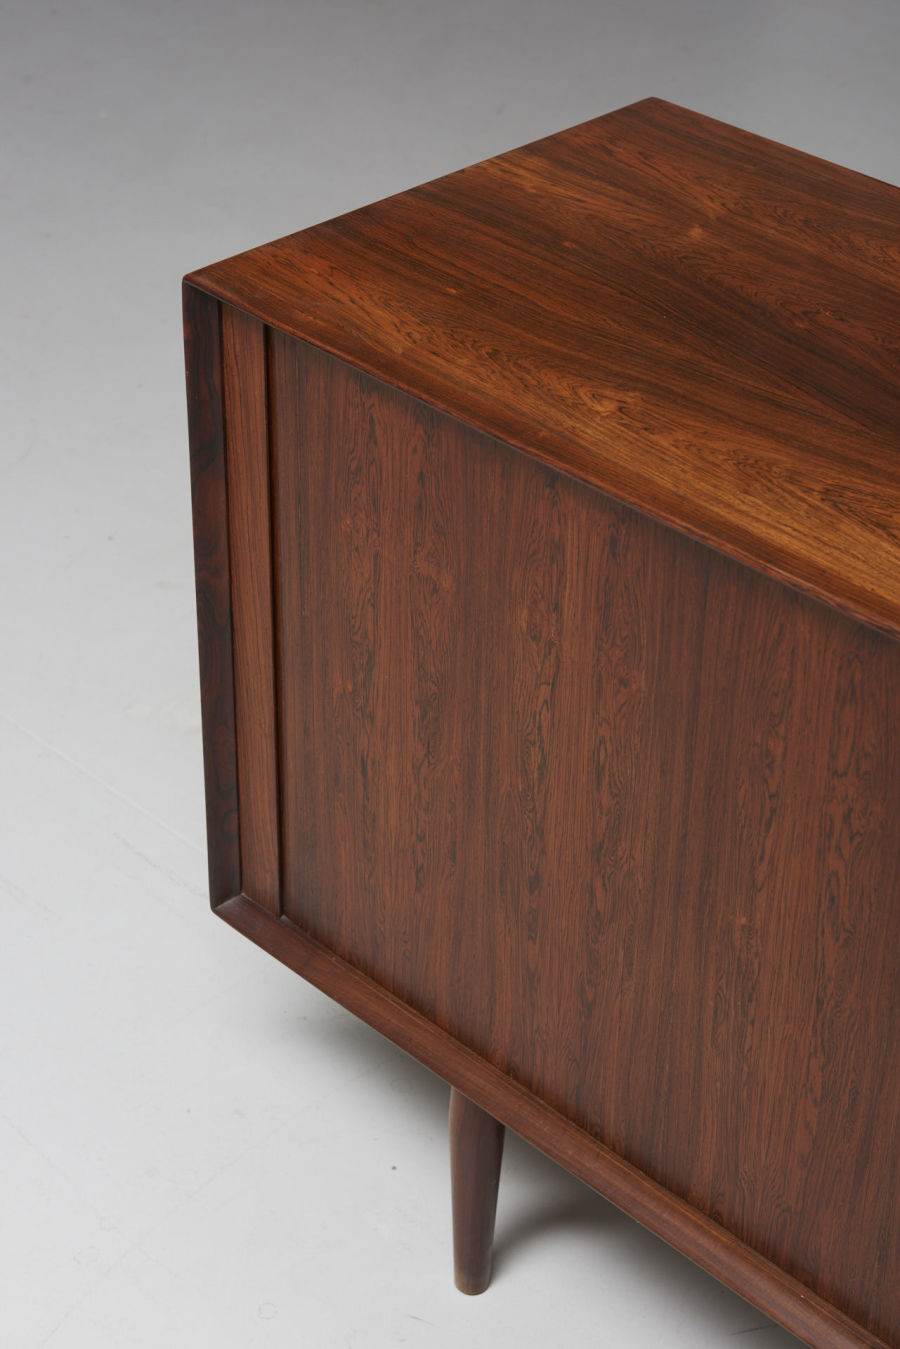 modestfurniture-vintage-2032-arne-vodder-sideboard-model-76-sibast14